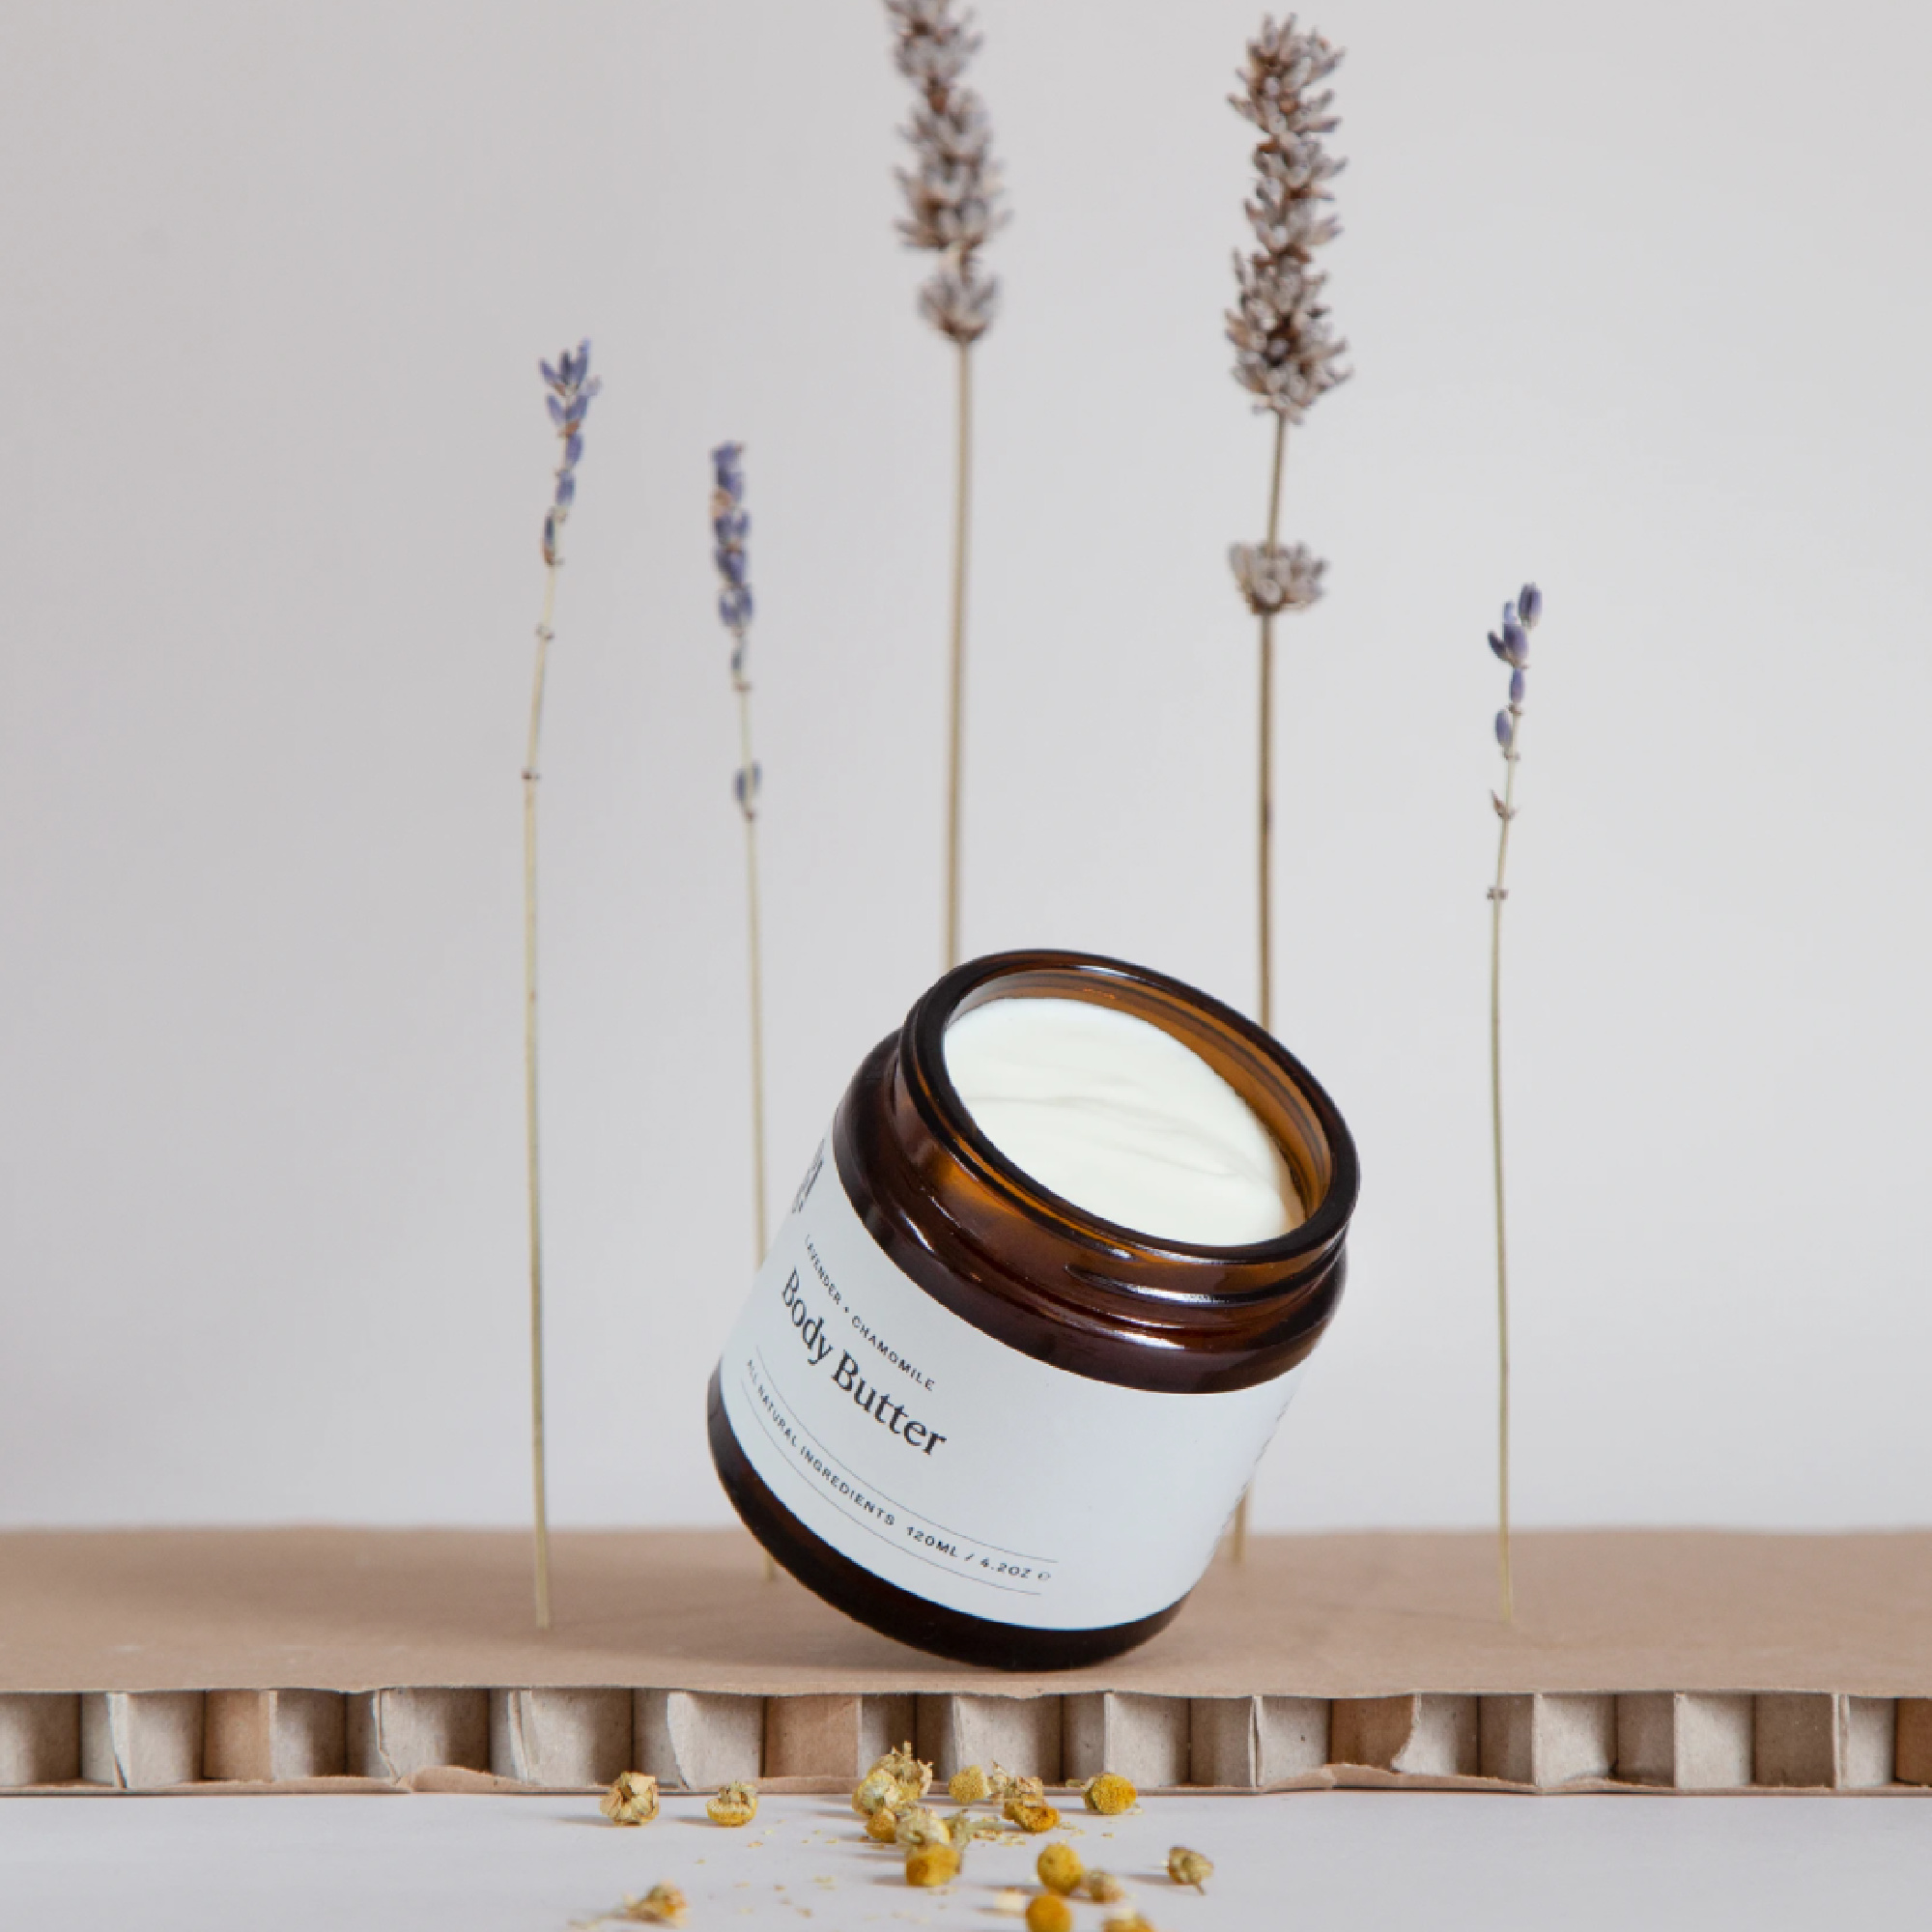 Botanical Body Butter by Our Lovely Goods